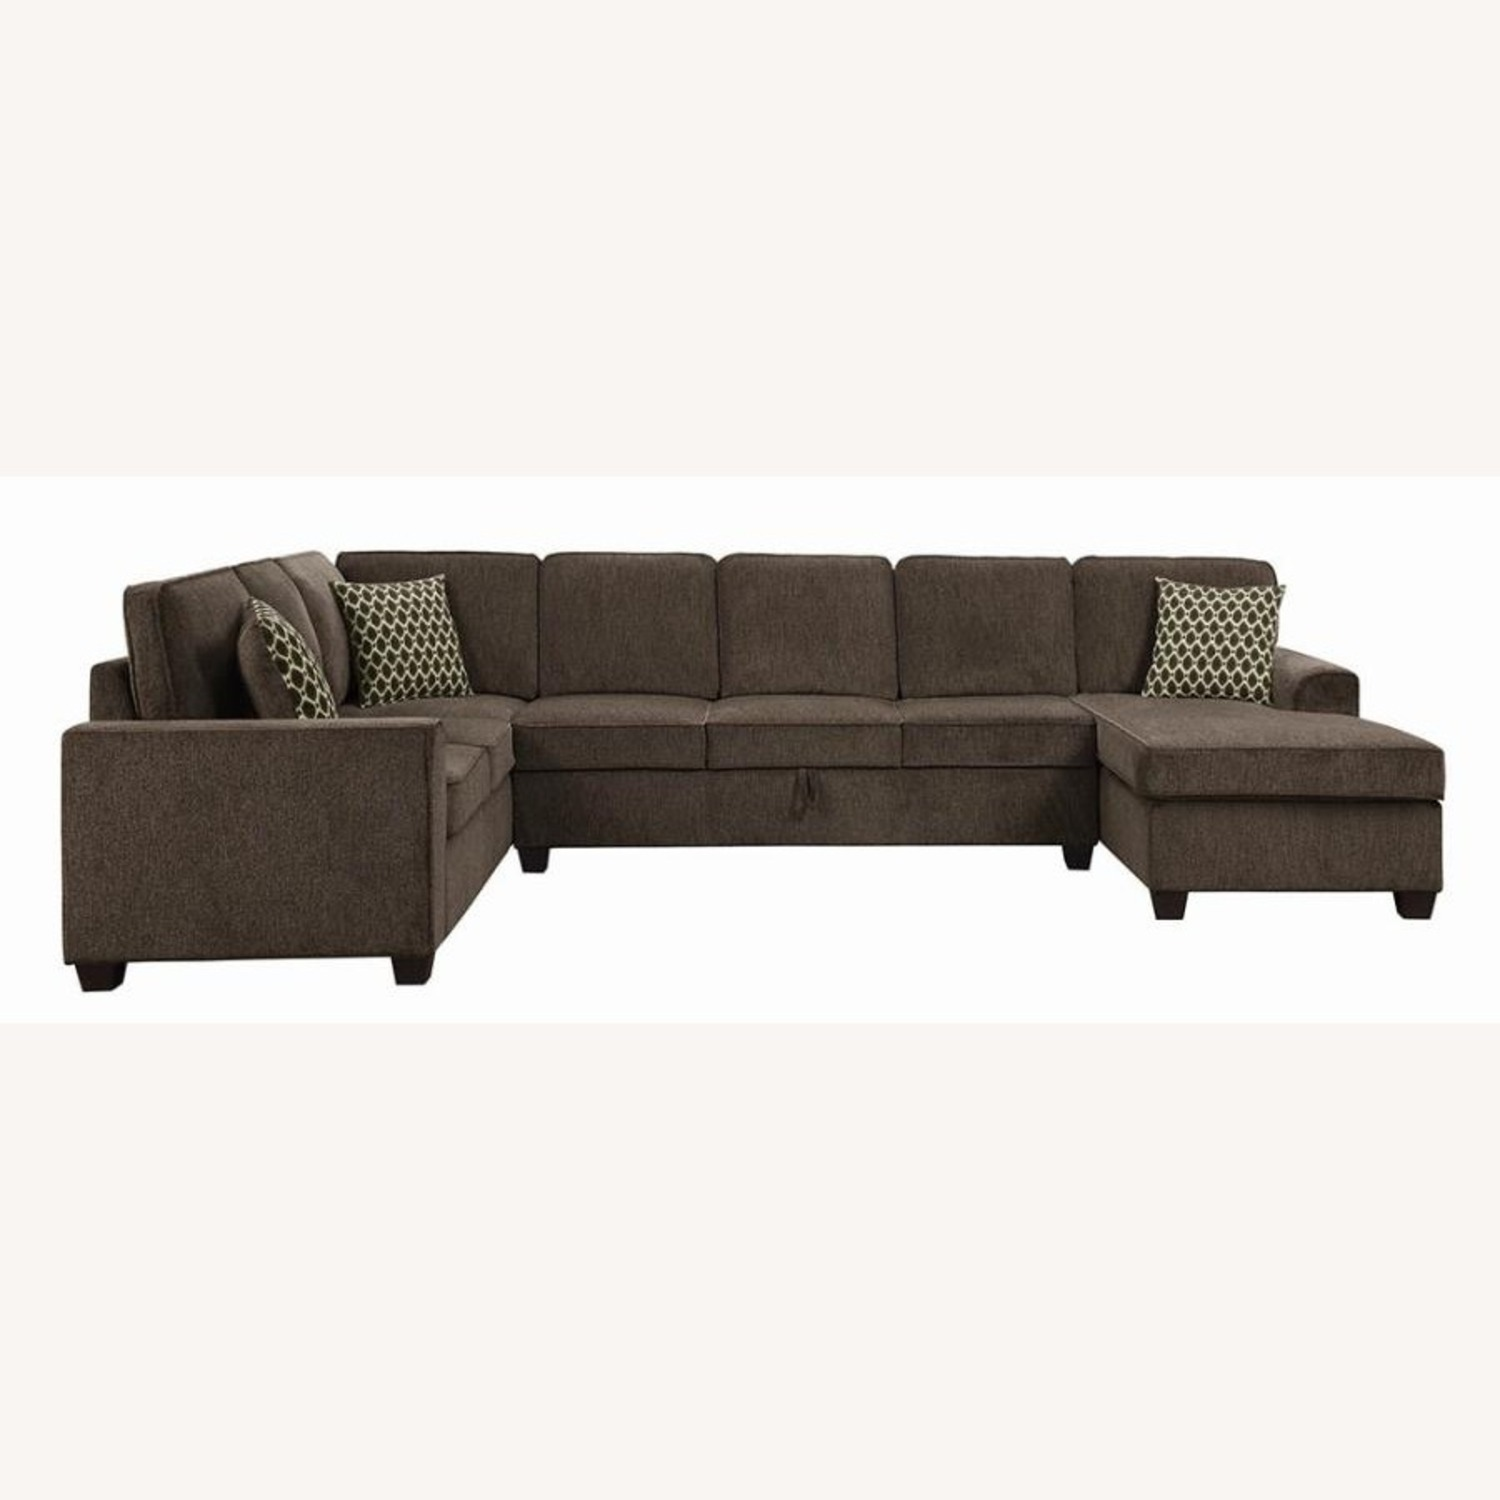 Sectional In Multi-Tonal Brown Chenille Upholstery - image-2